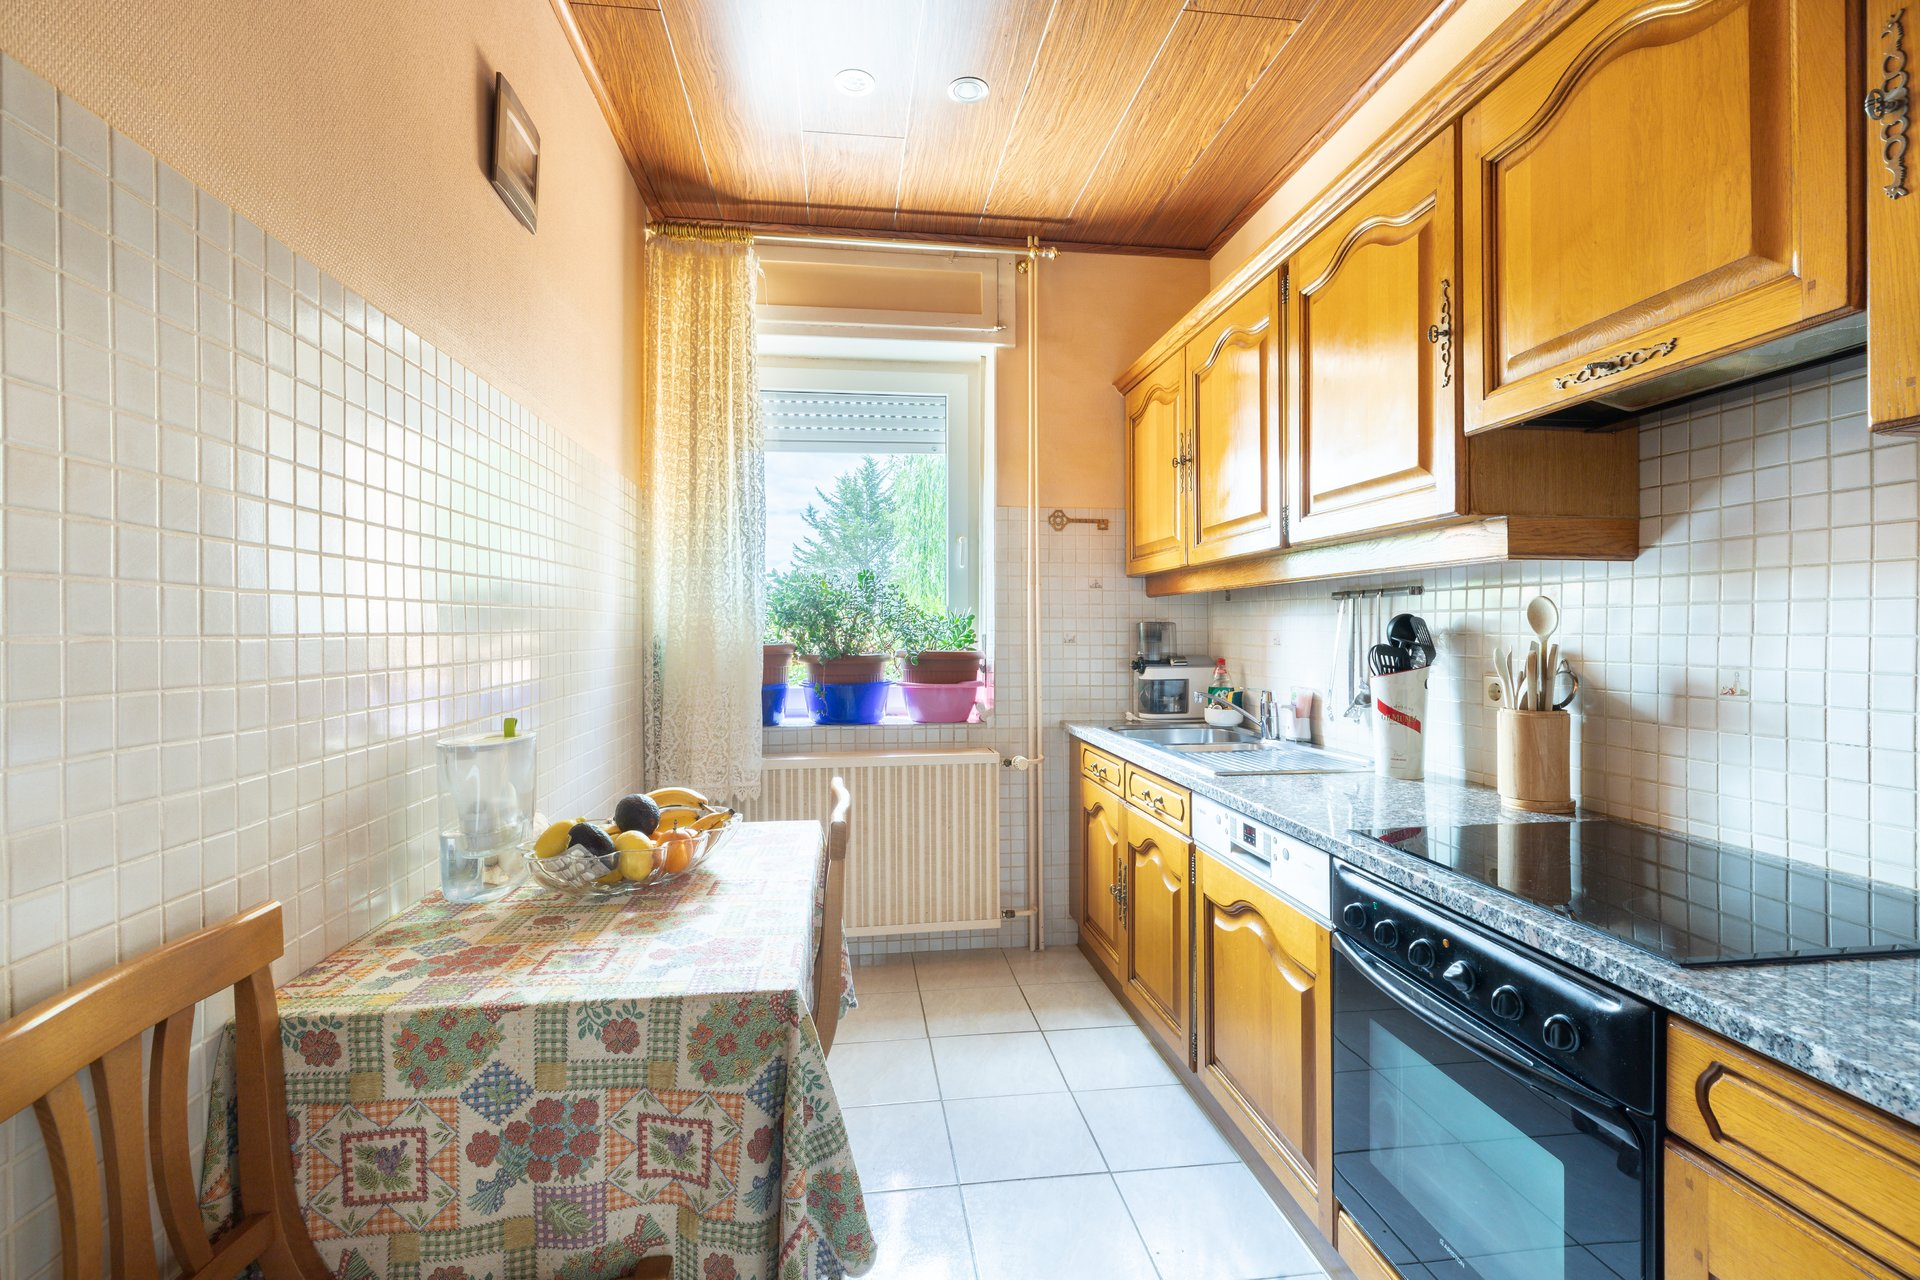 House - 3 bedrooms - garden - Luxembourg Gasperich